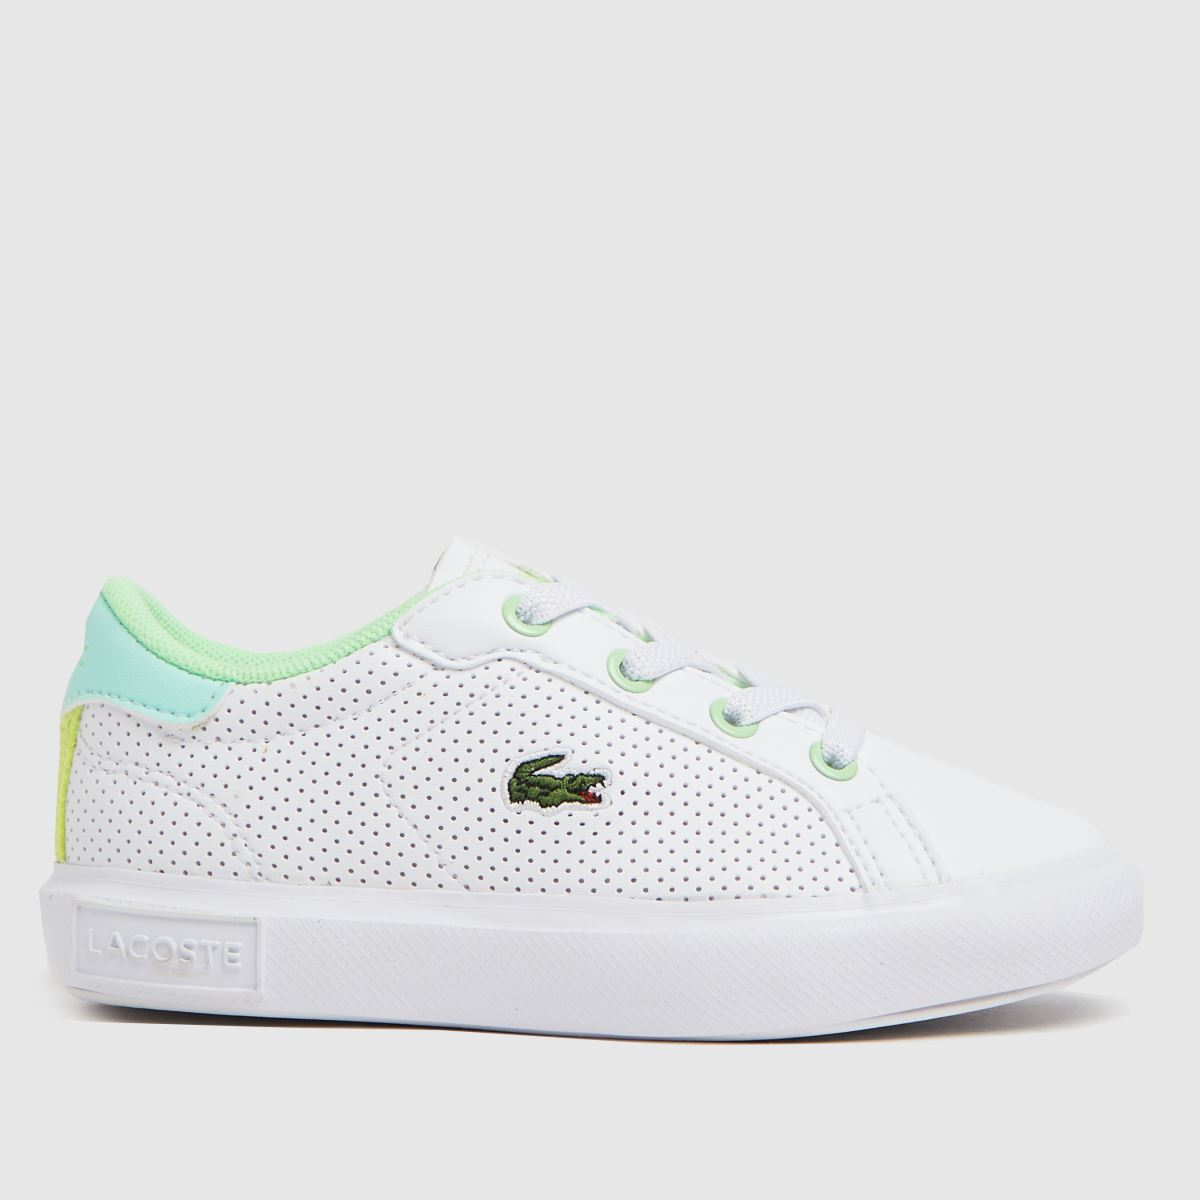 Lacoste White & Green Powercourt Tdlr Trainers Toddler